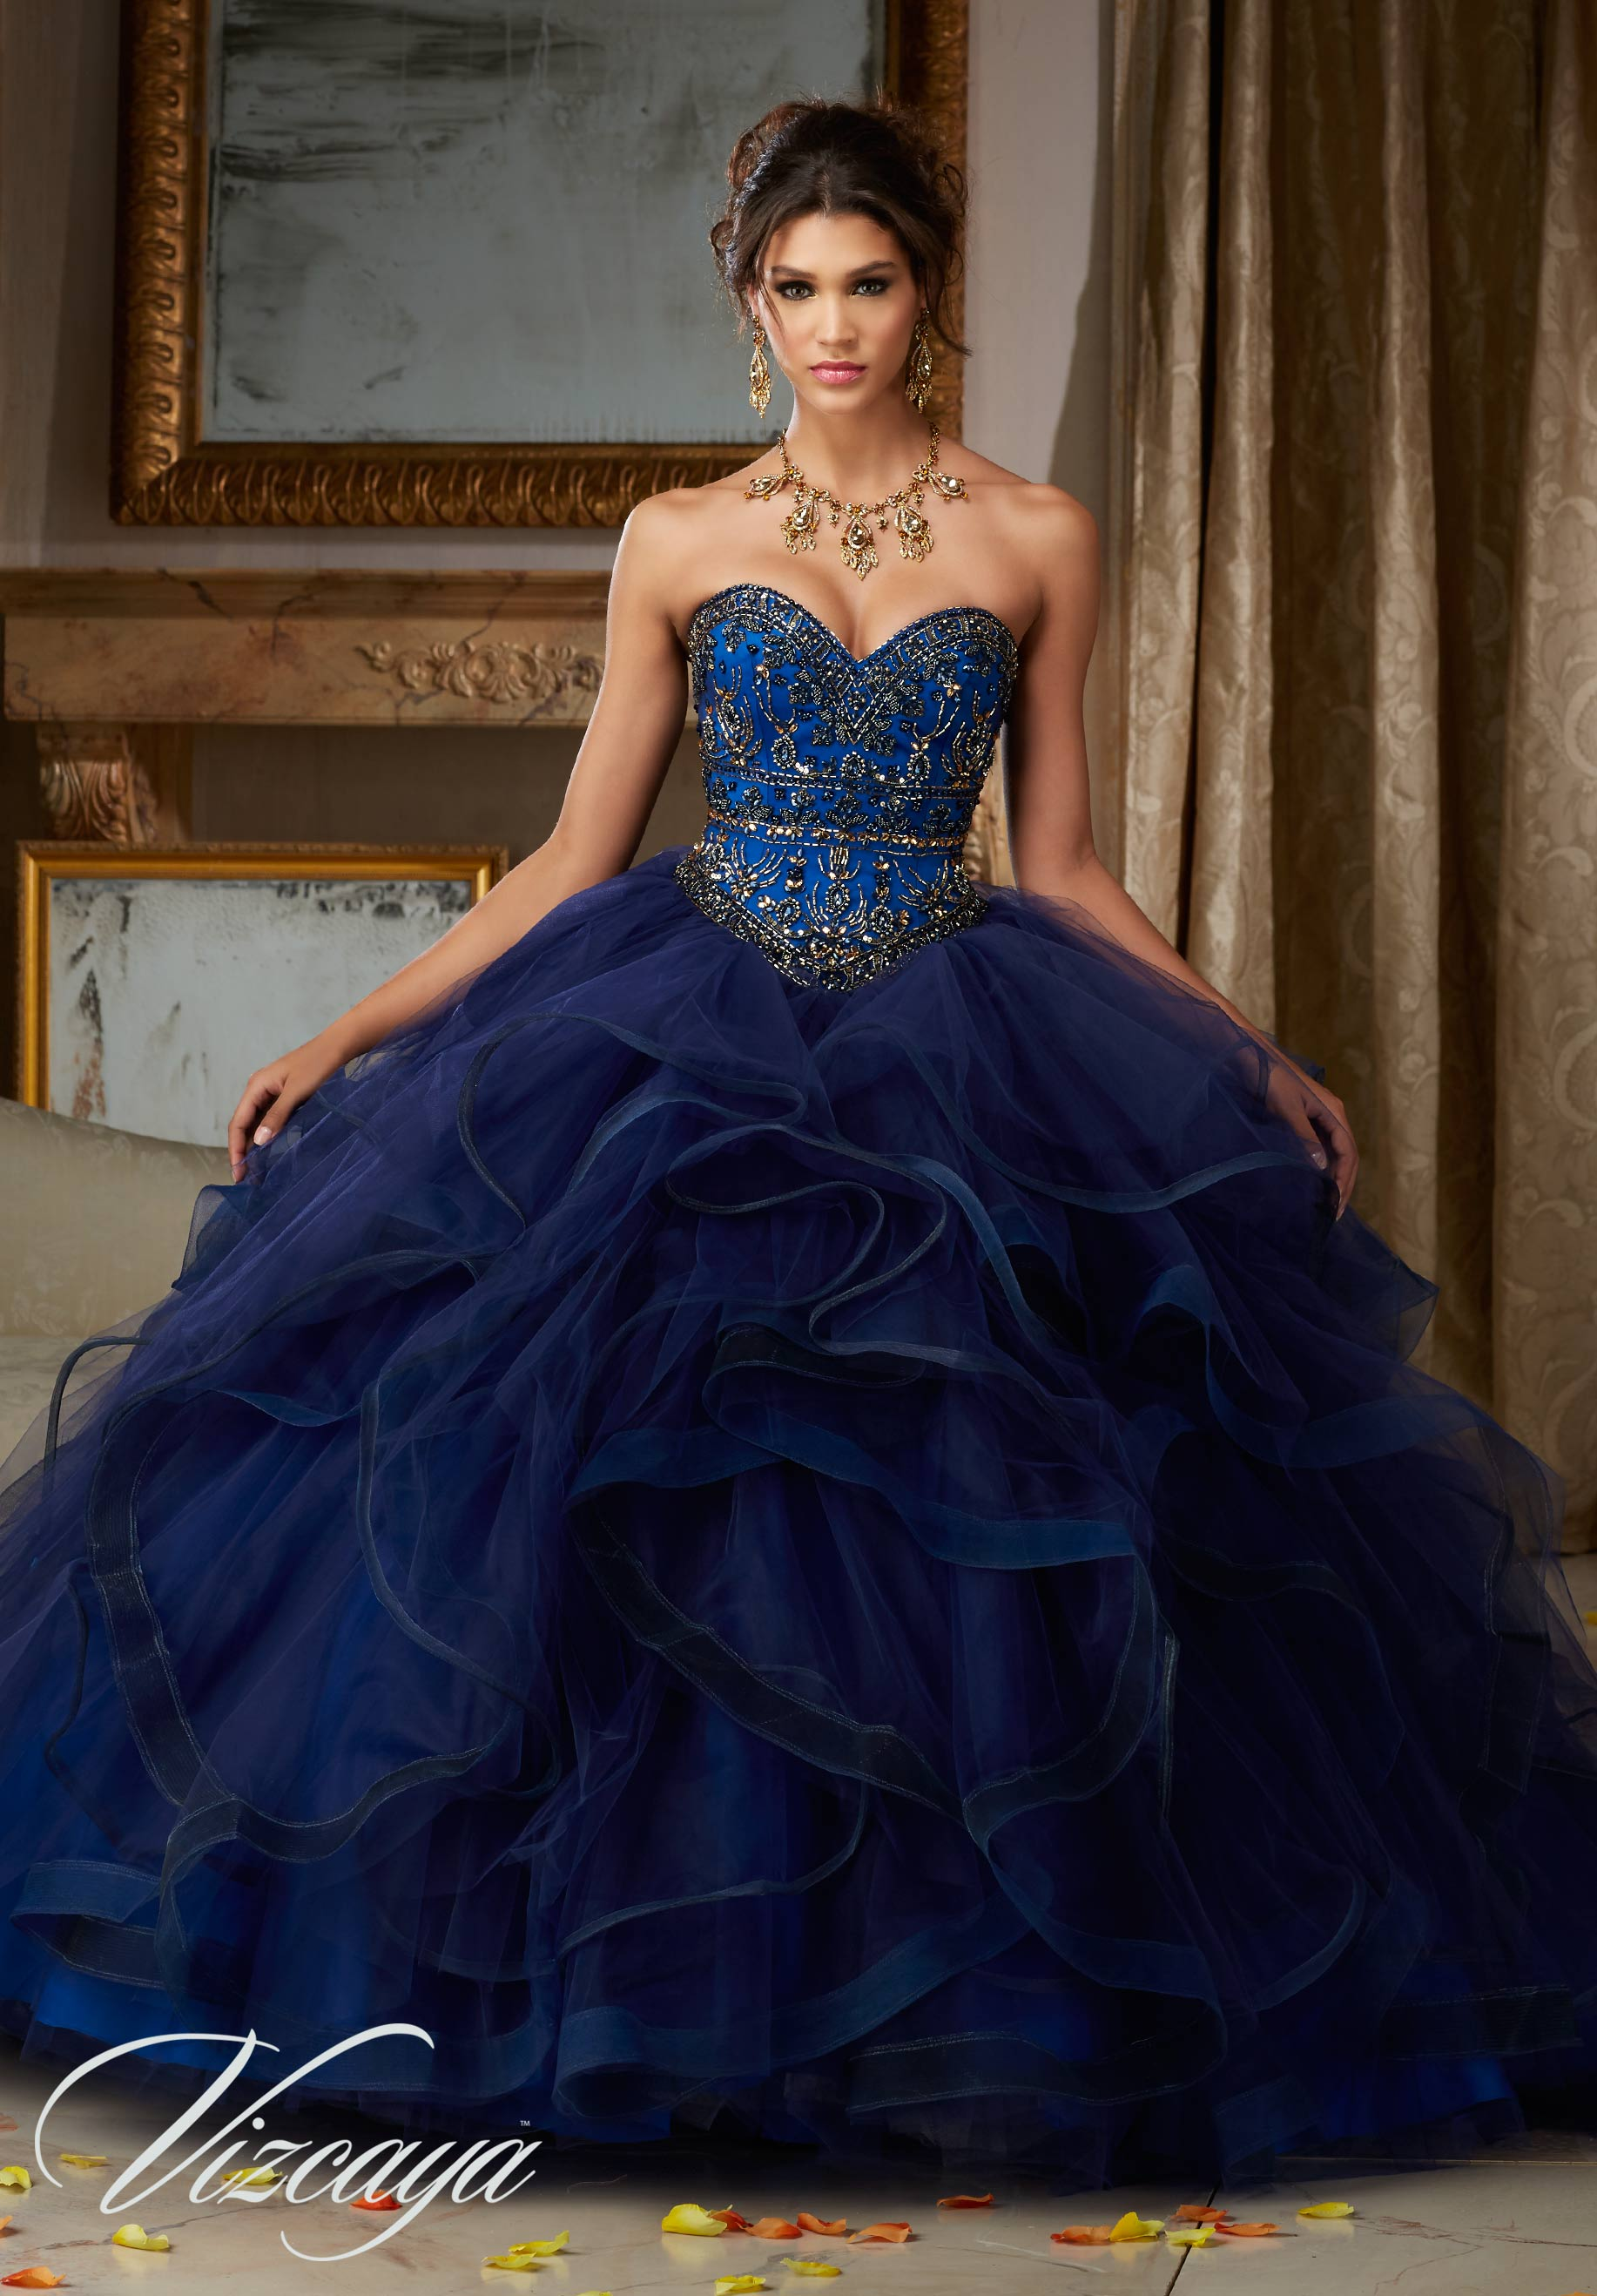 a01564c1e8 Quinceanera Dress 89118 JEWELED BEADING ON FLOUNCED TULLE BALL GOWN